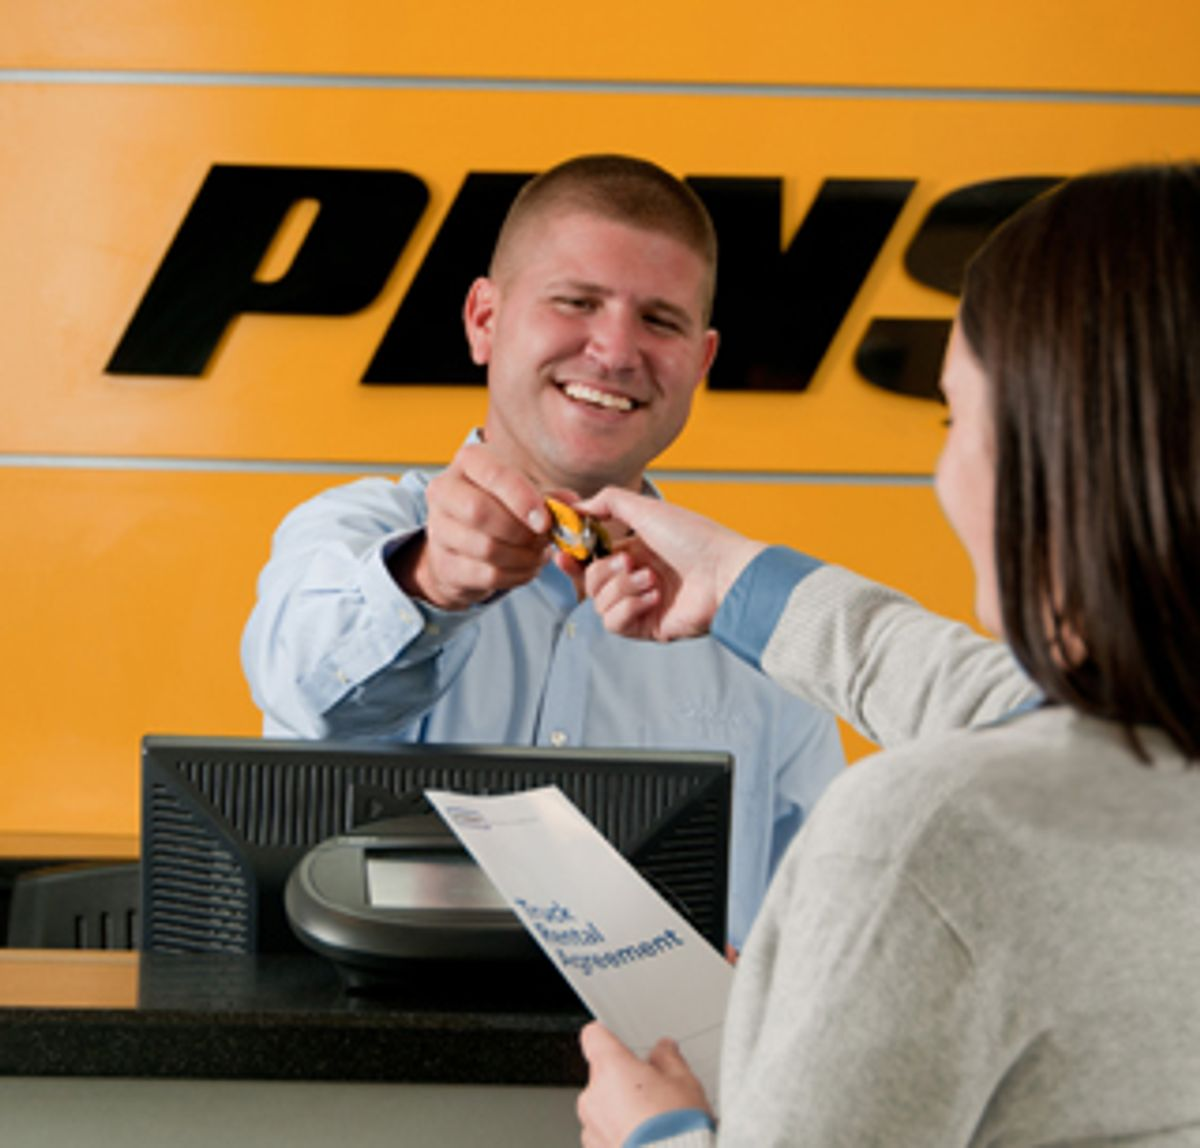 Get Dependable Trucks, Fast with Penske's Rental Express